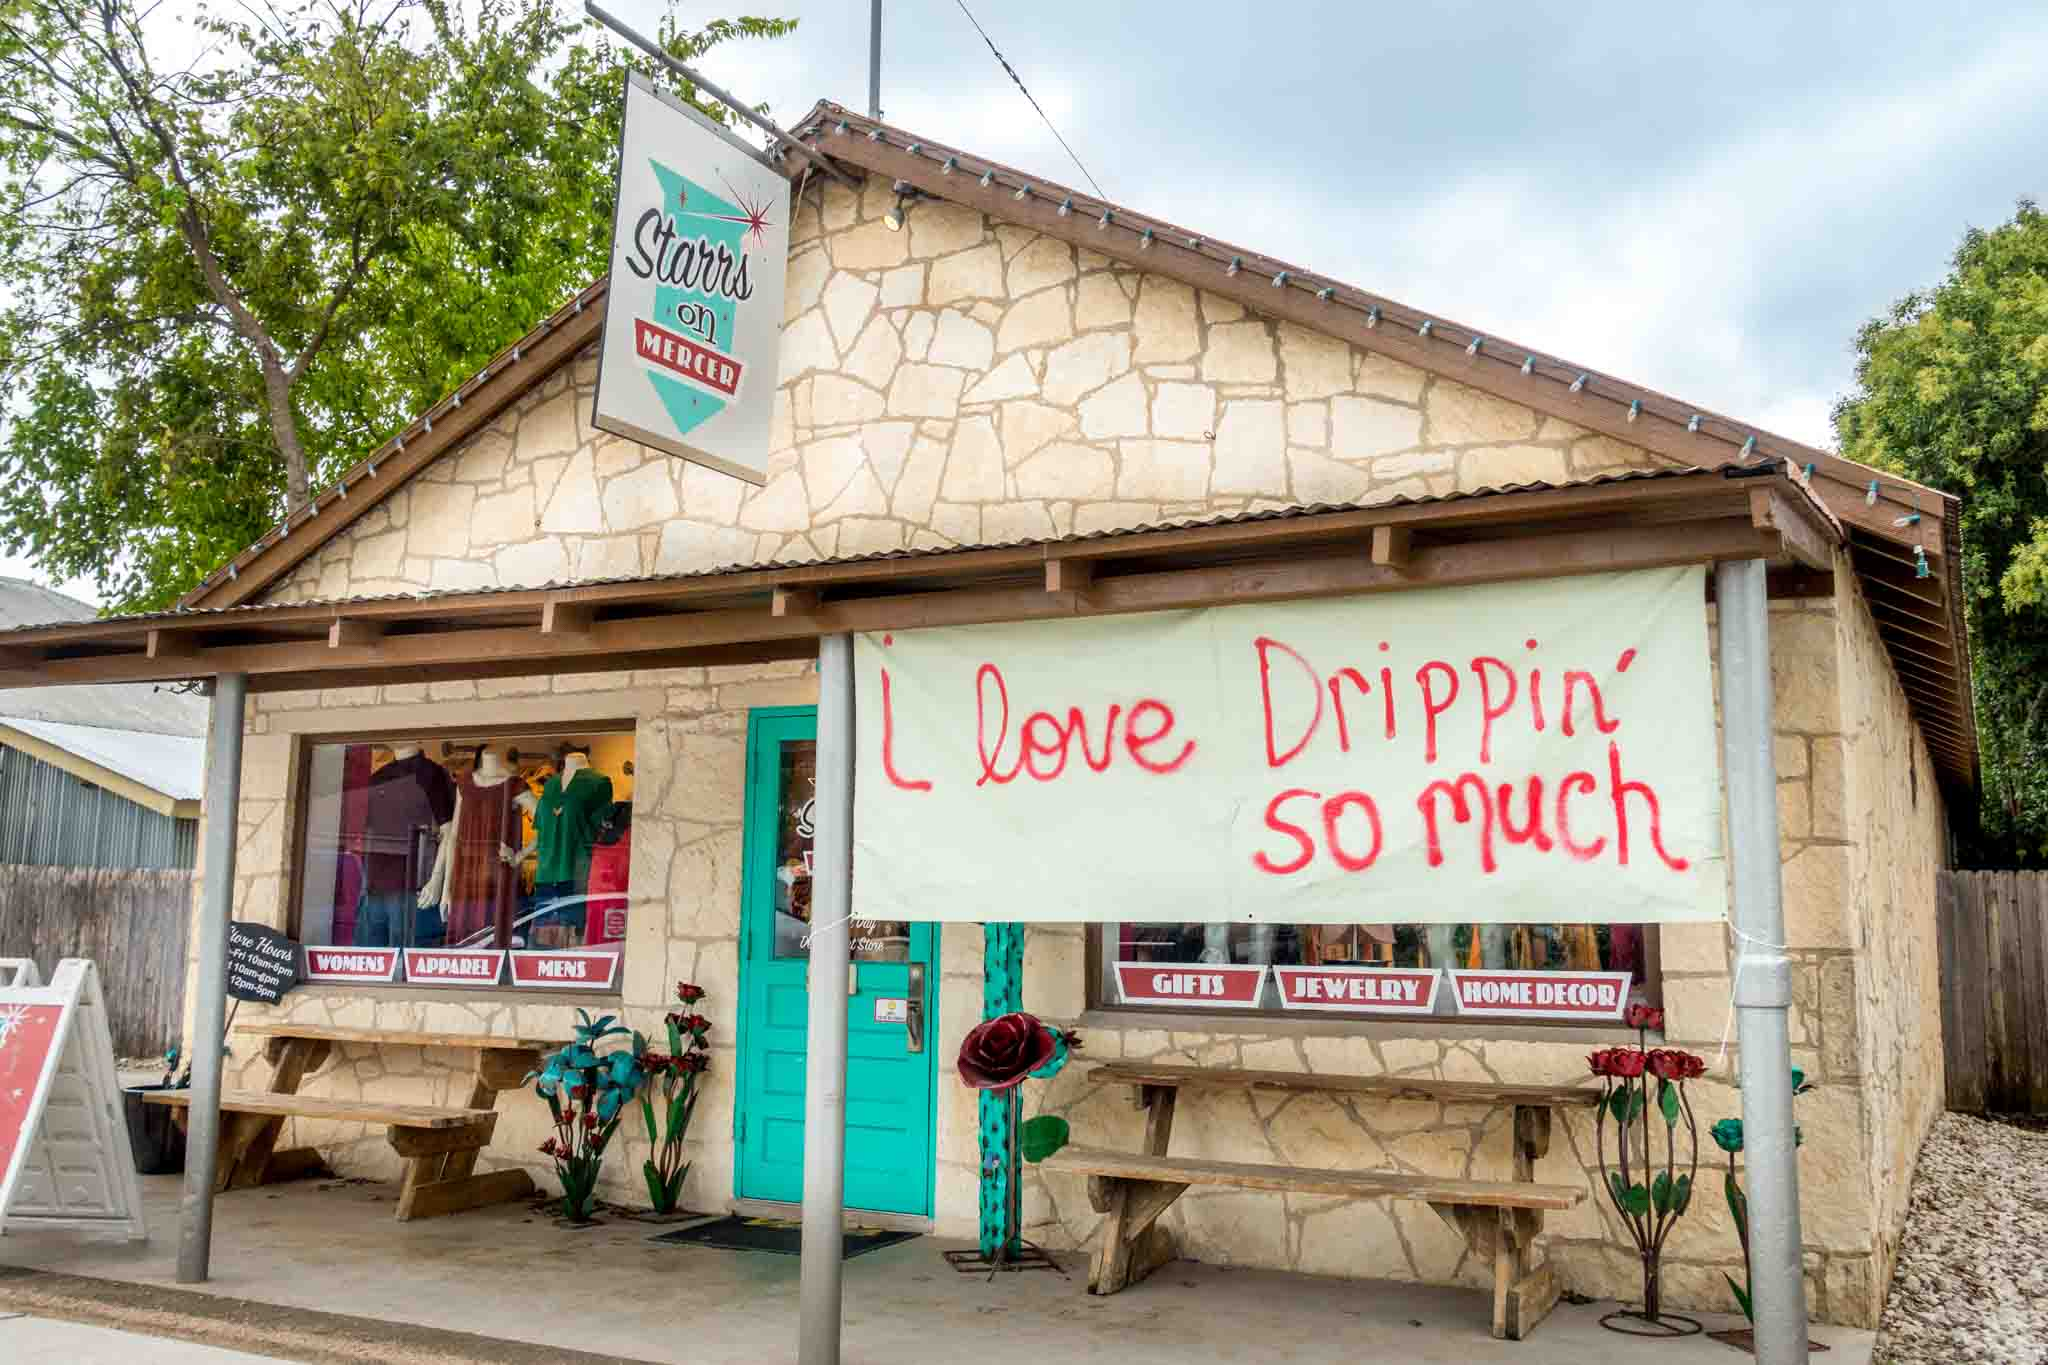 Store with I Love Drippin' So Much sign in Dripping Springs TX